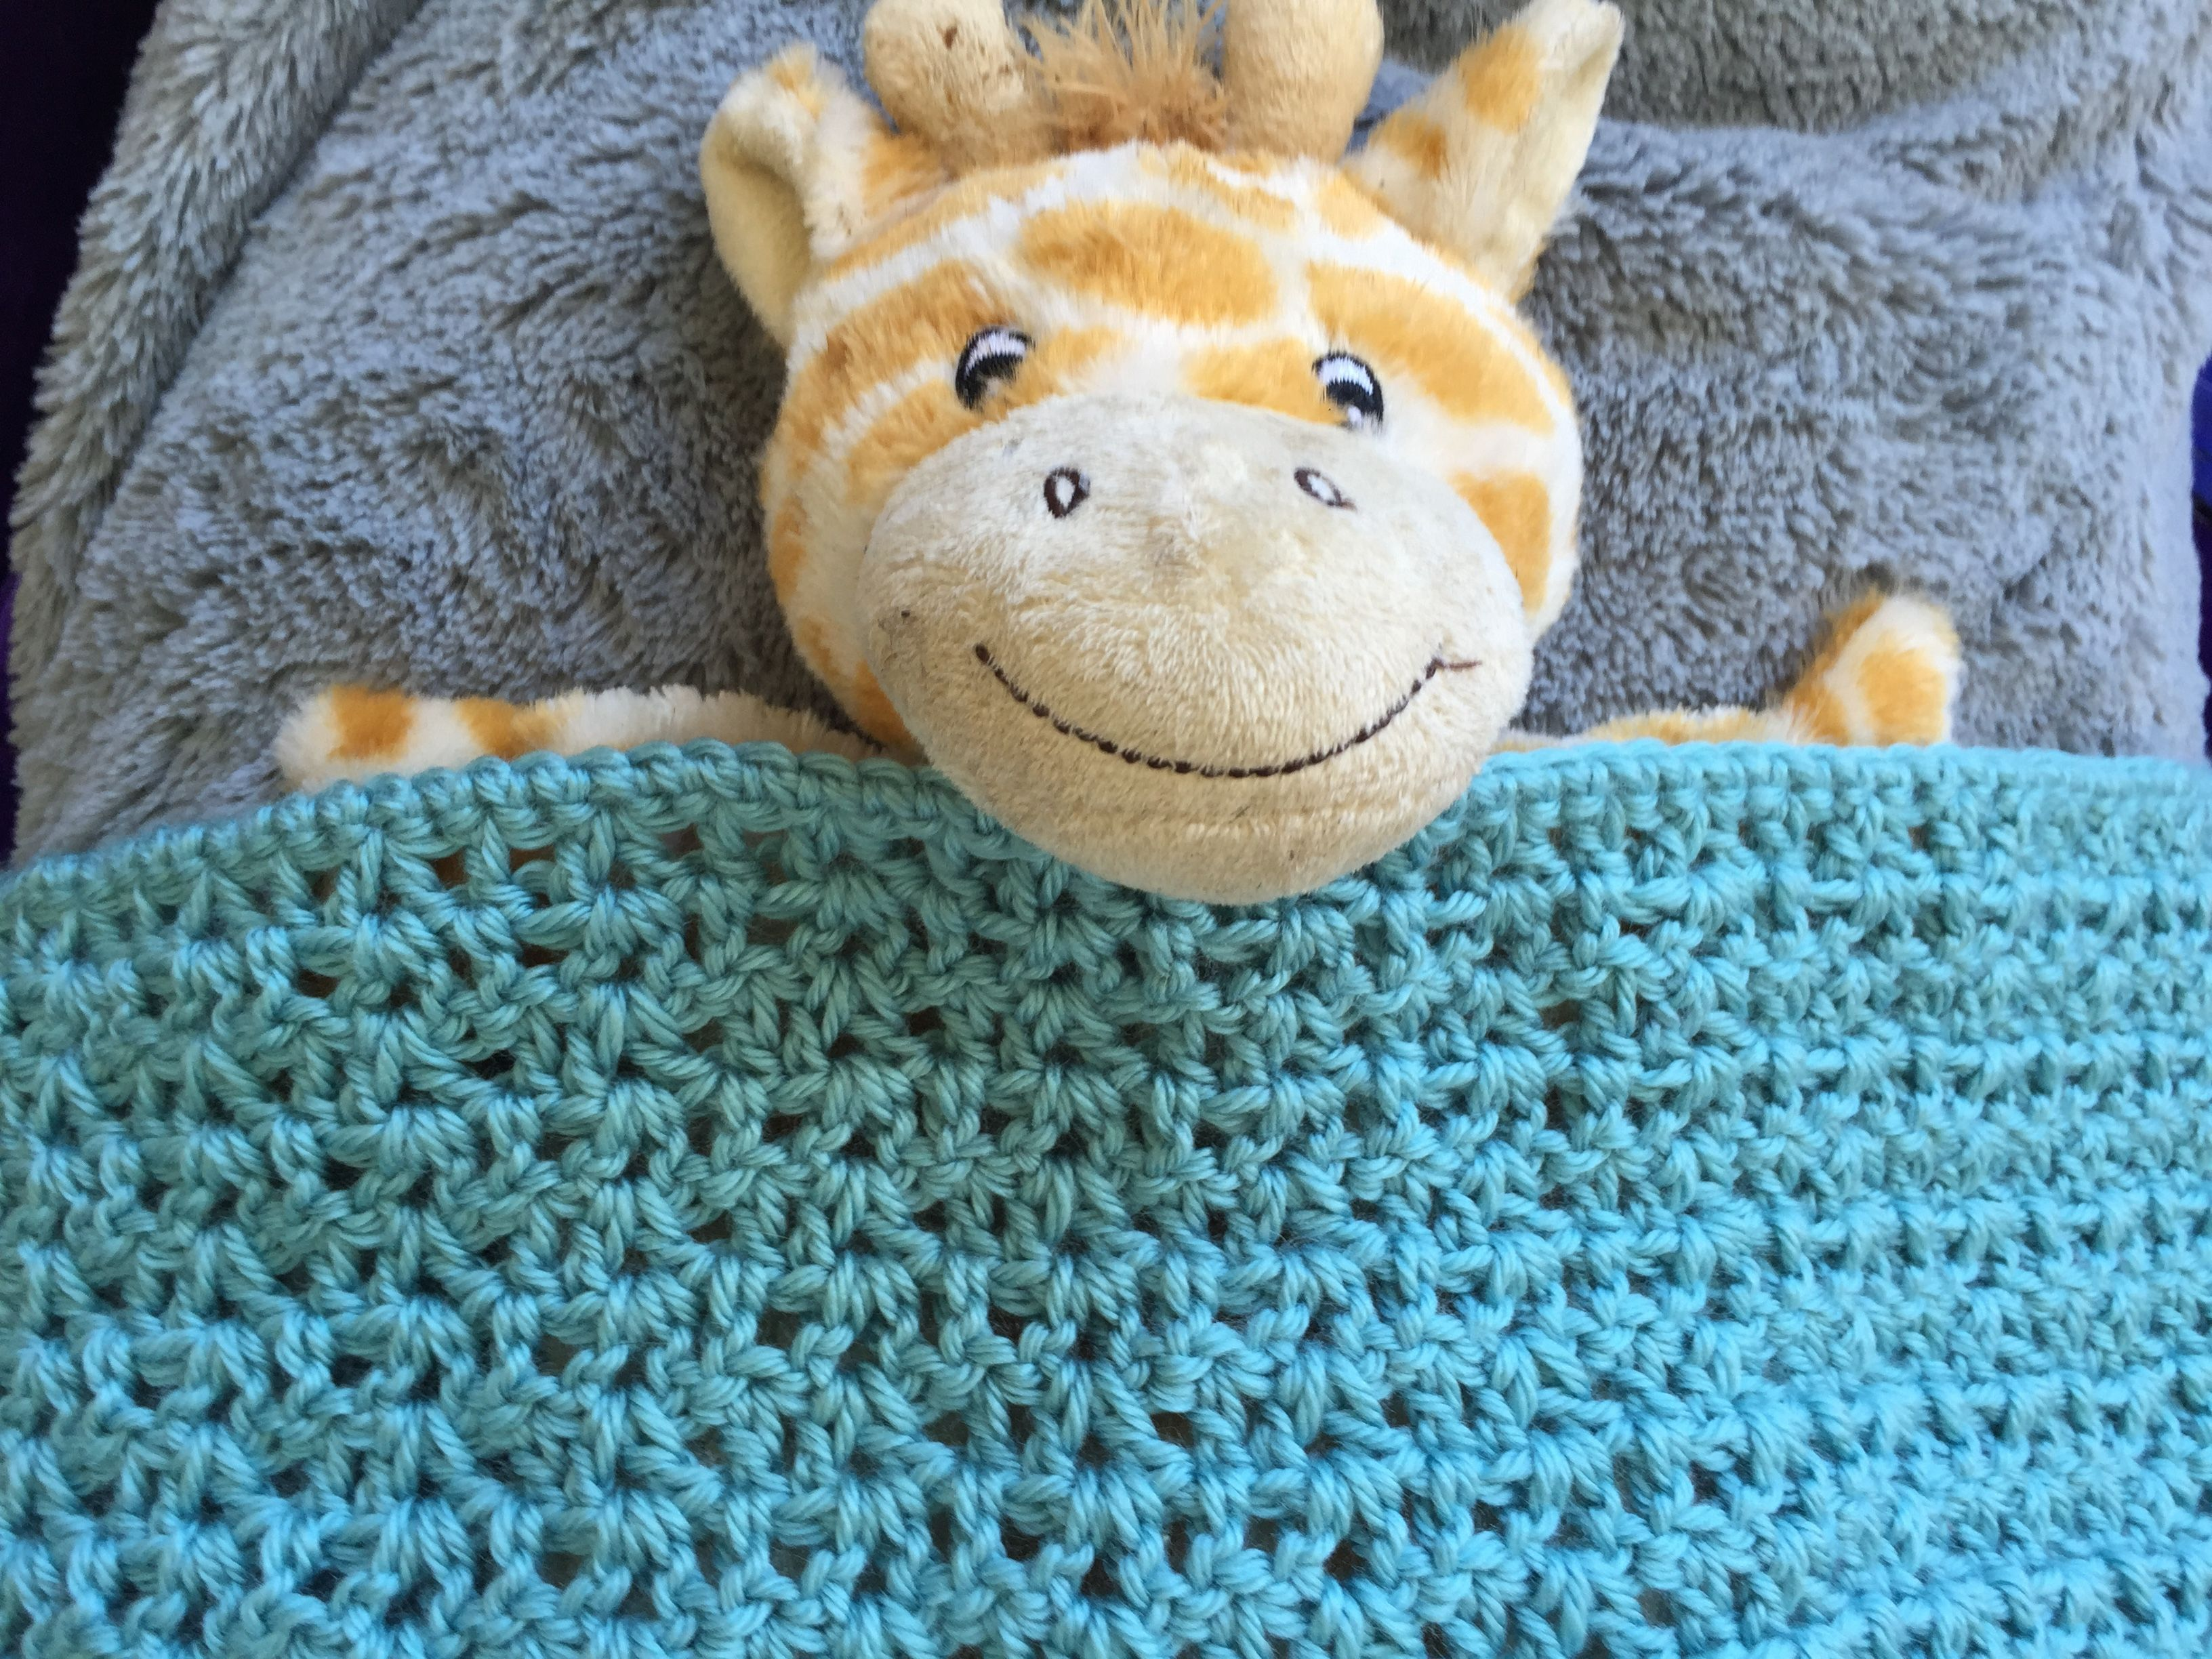 Crochet Blanket Patterns Free Cool Ideas